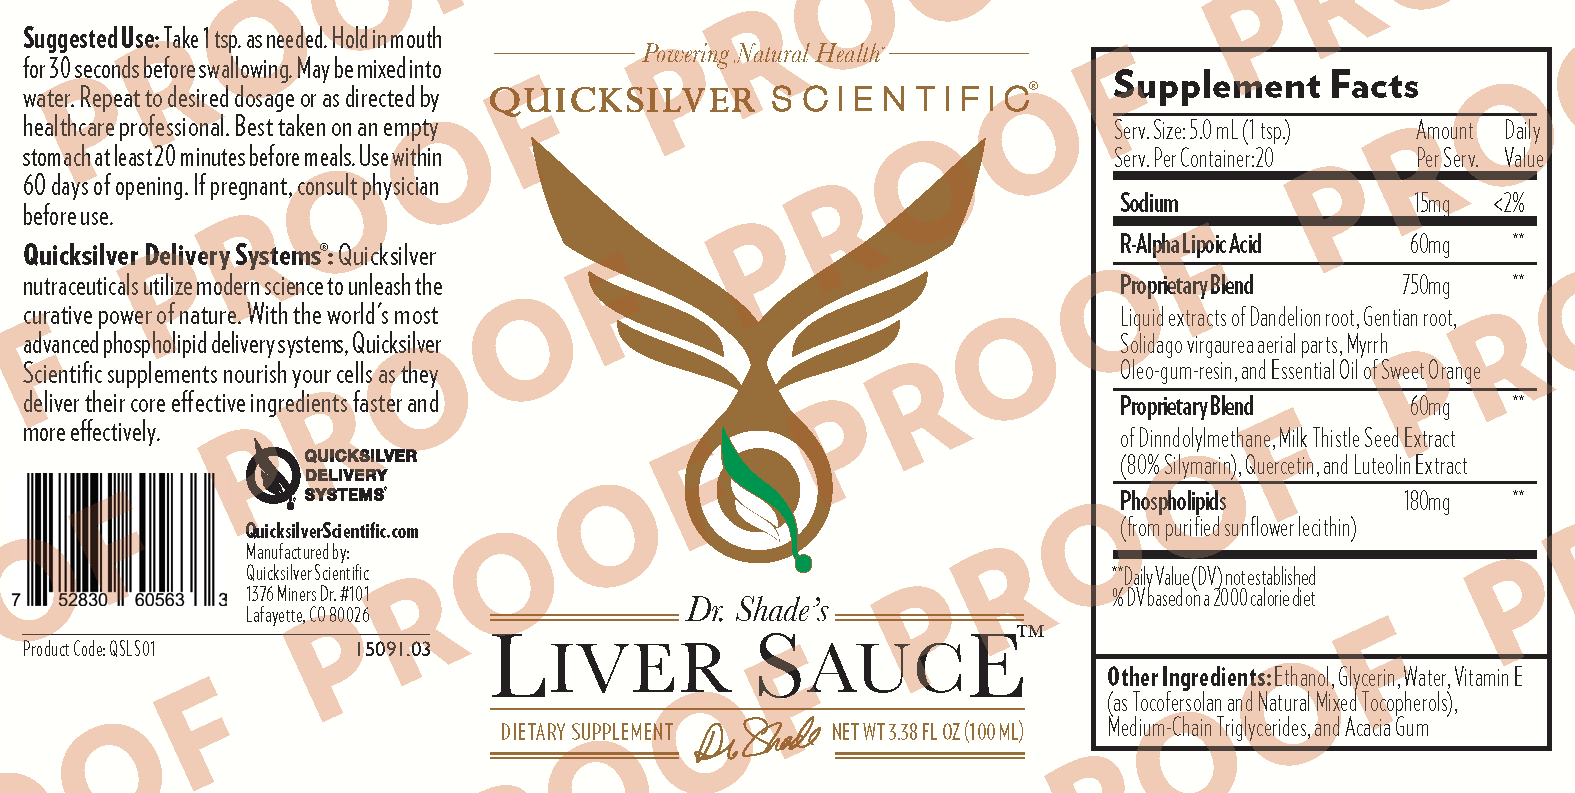 Liver Sauce 100ml Herbal Line 1509103 Vitamin C-1000 from Tapioca